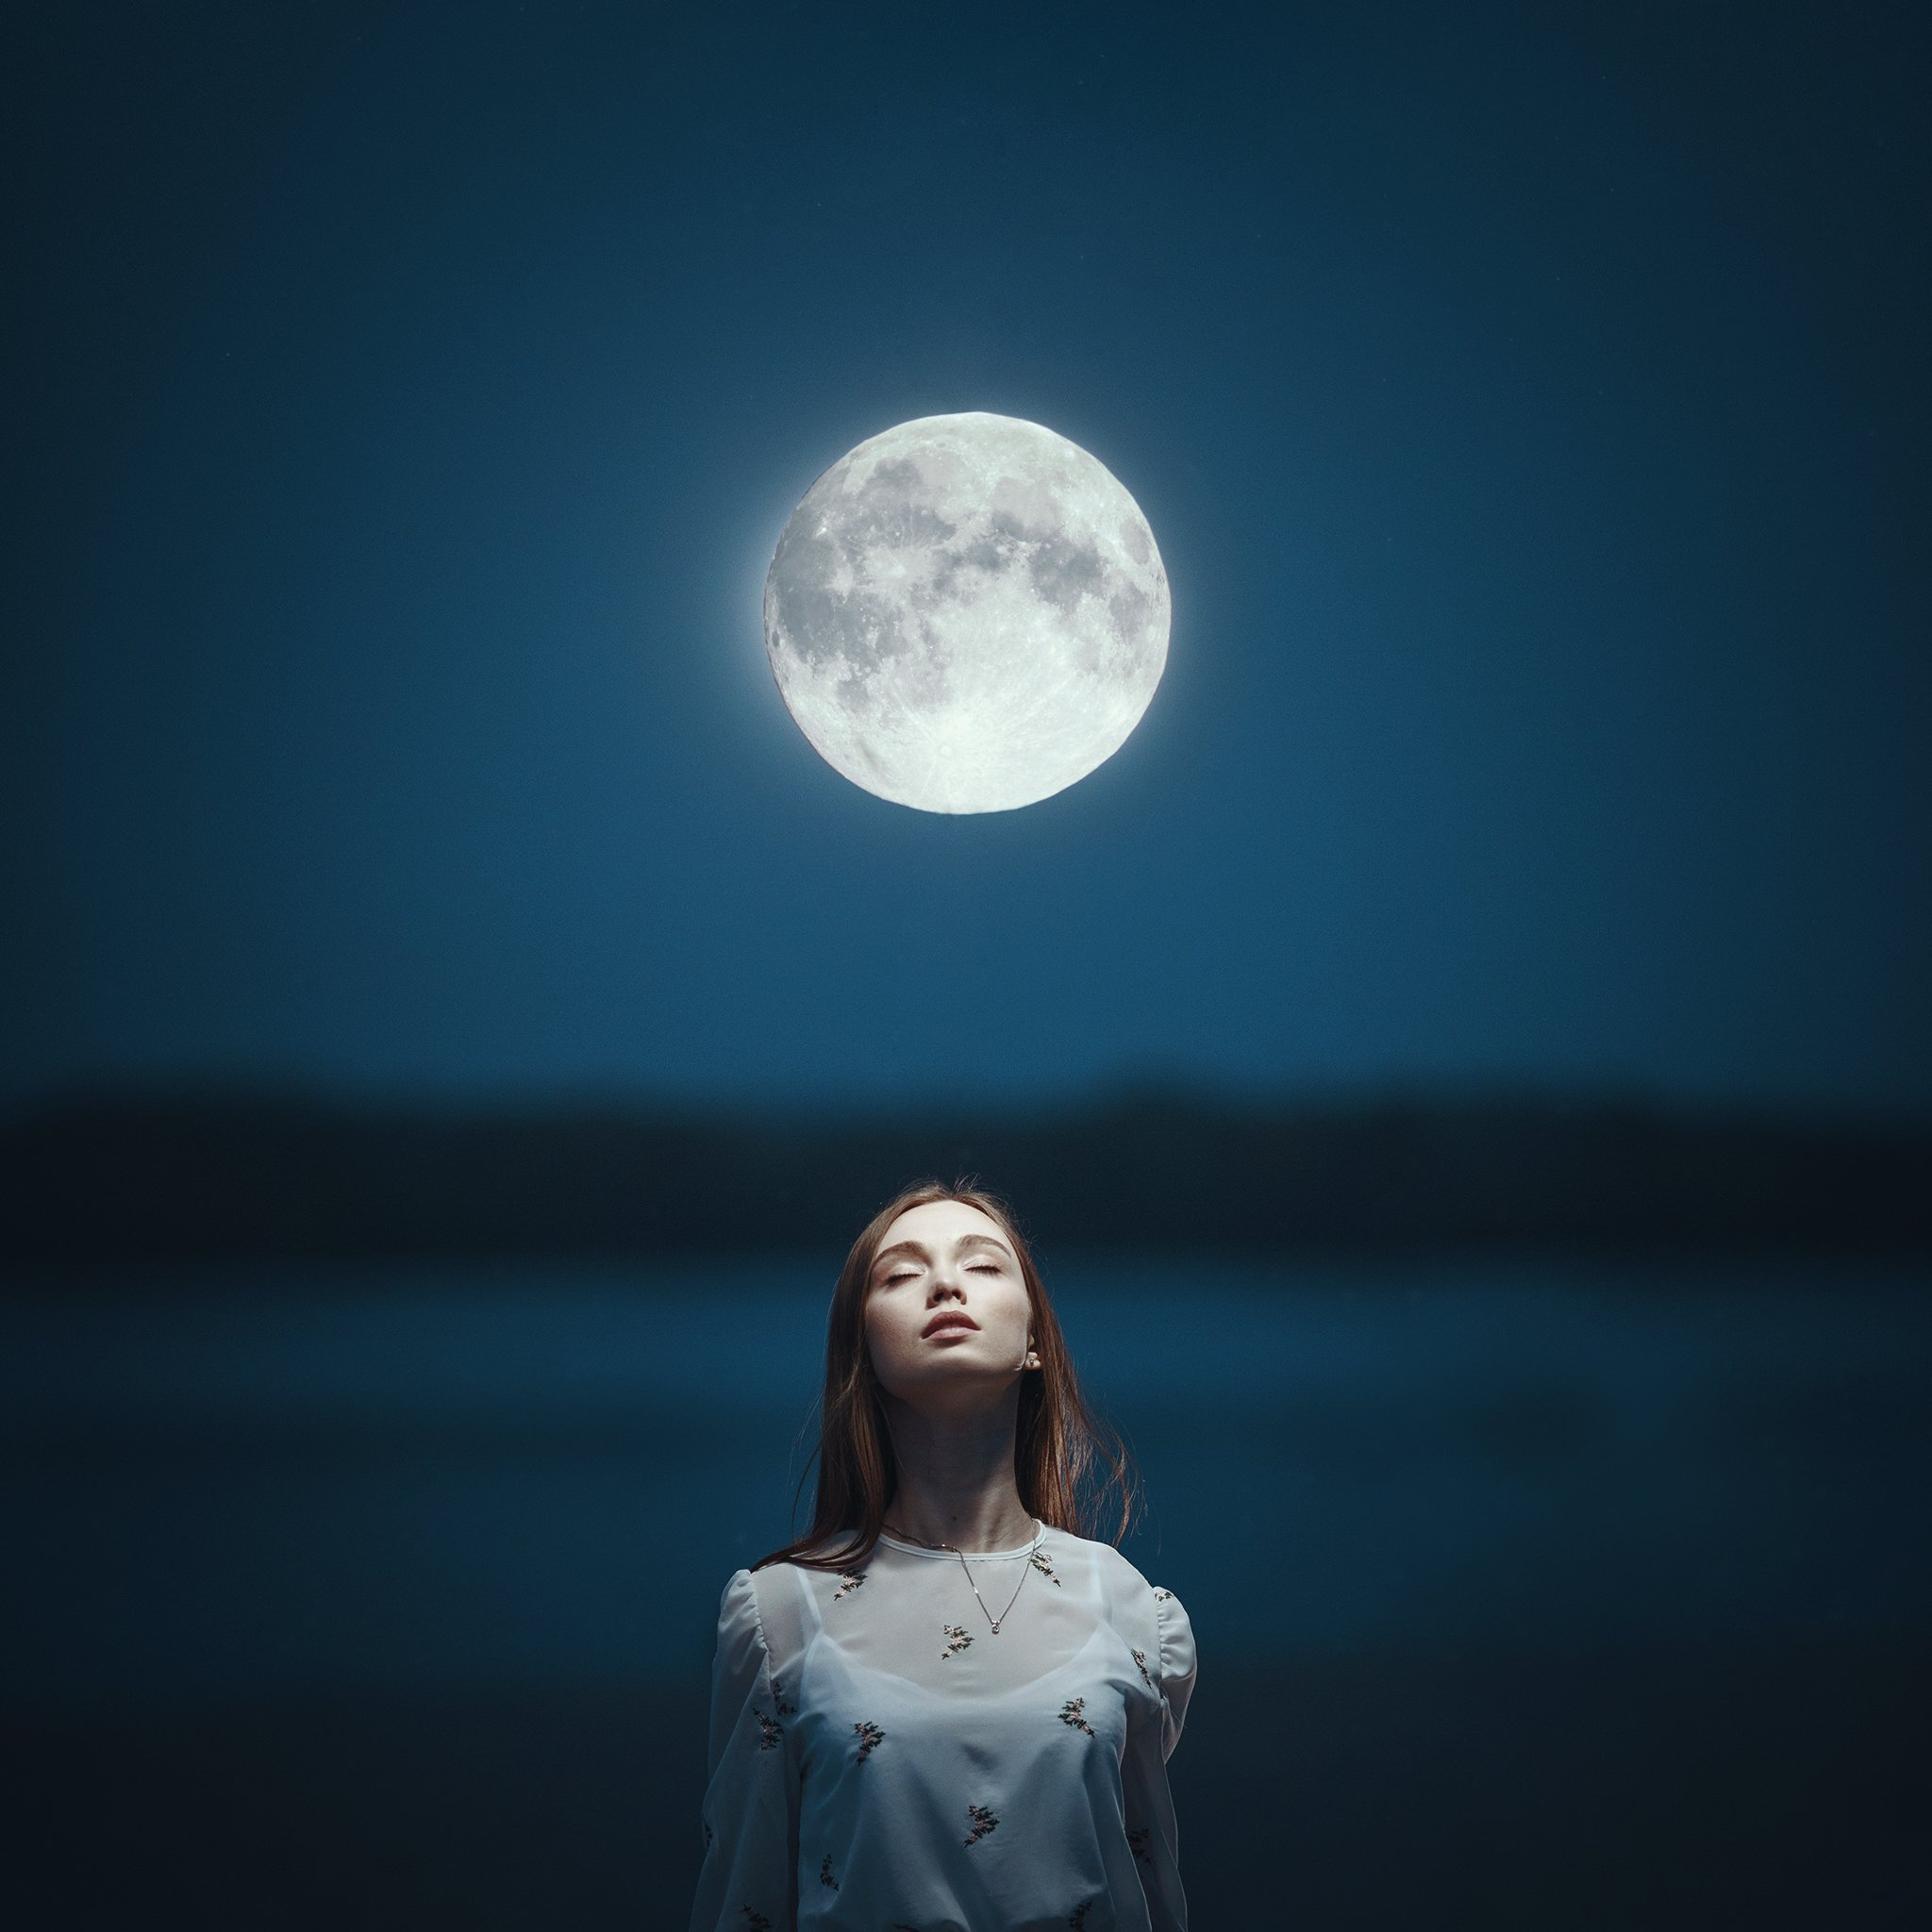 image of girl looking at moon with star and cloud overlays added using photoshop